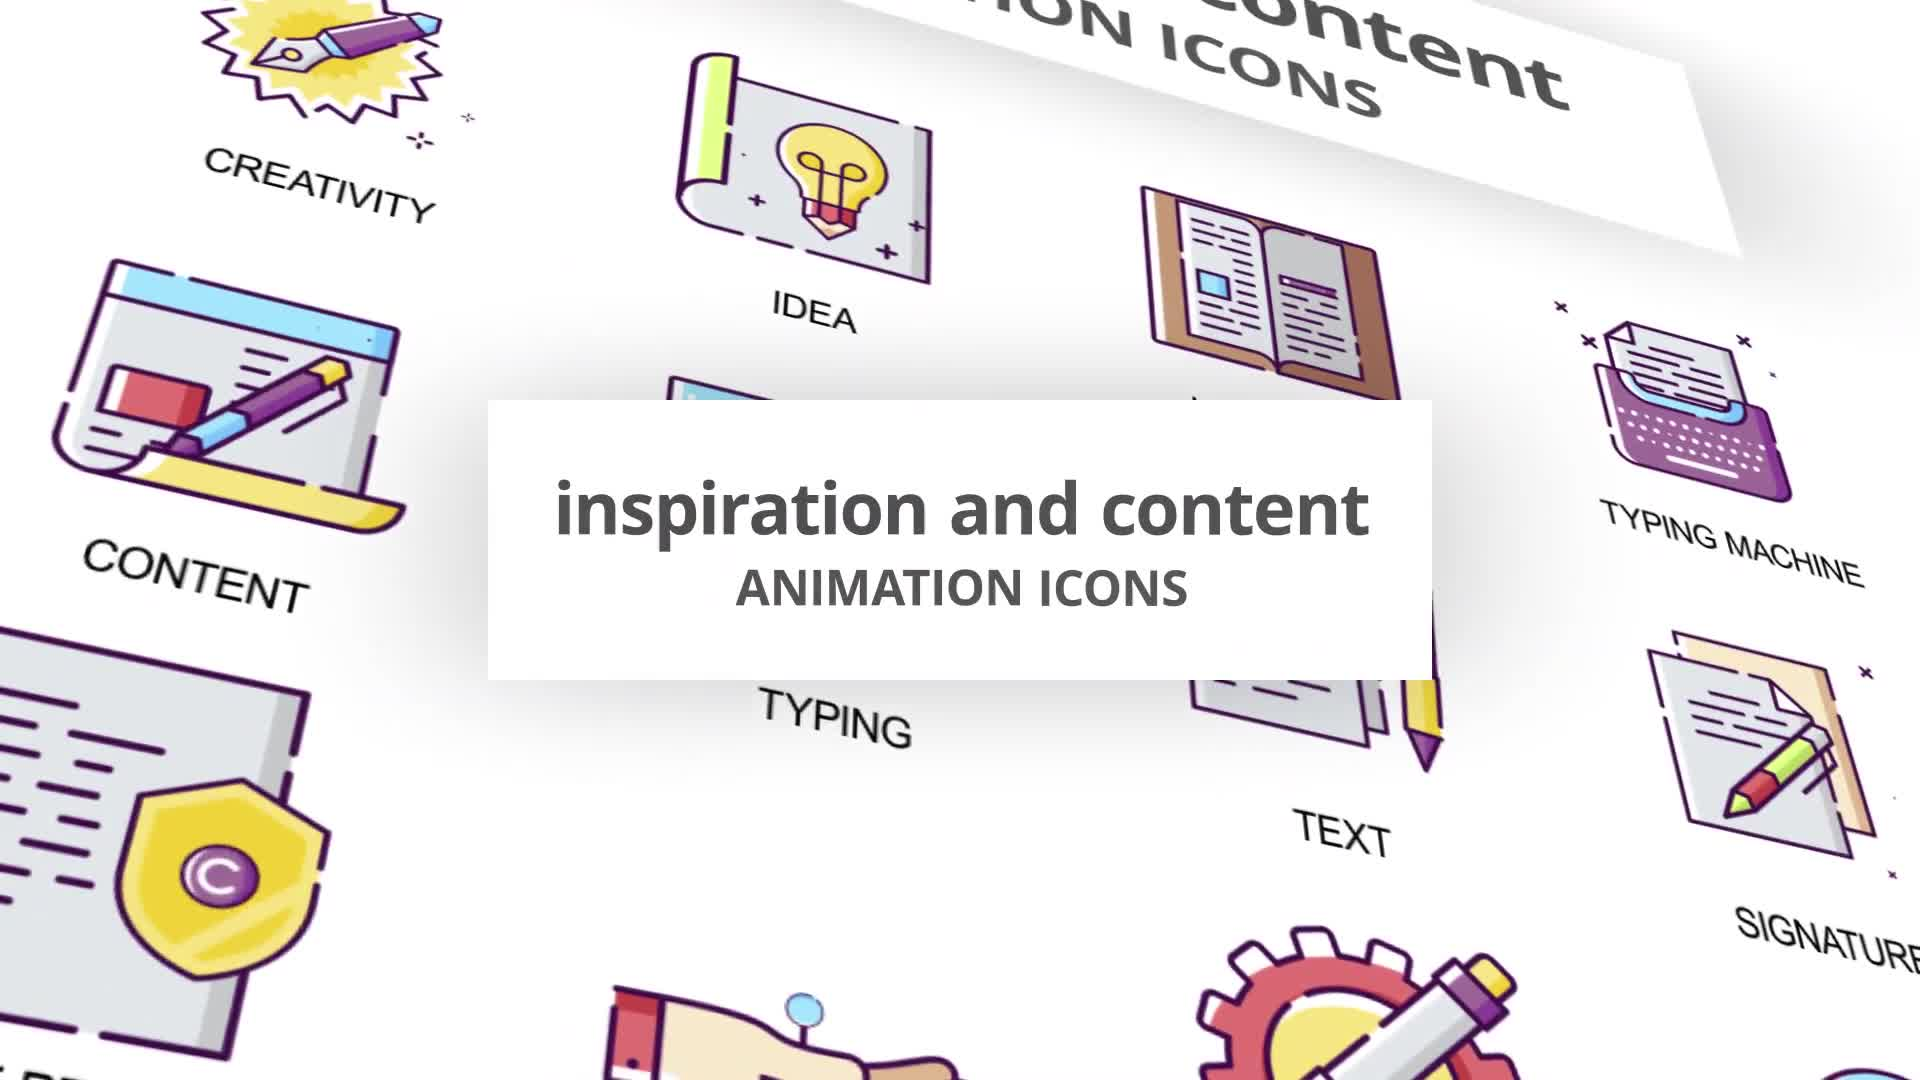 Inspiration & Content Animation Icons Videohive 30041554 After Effects Image 1